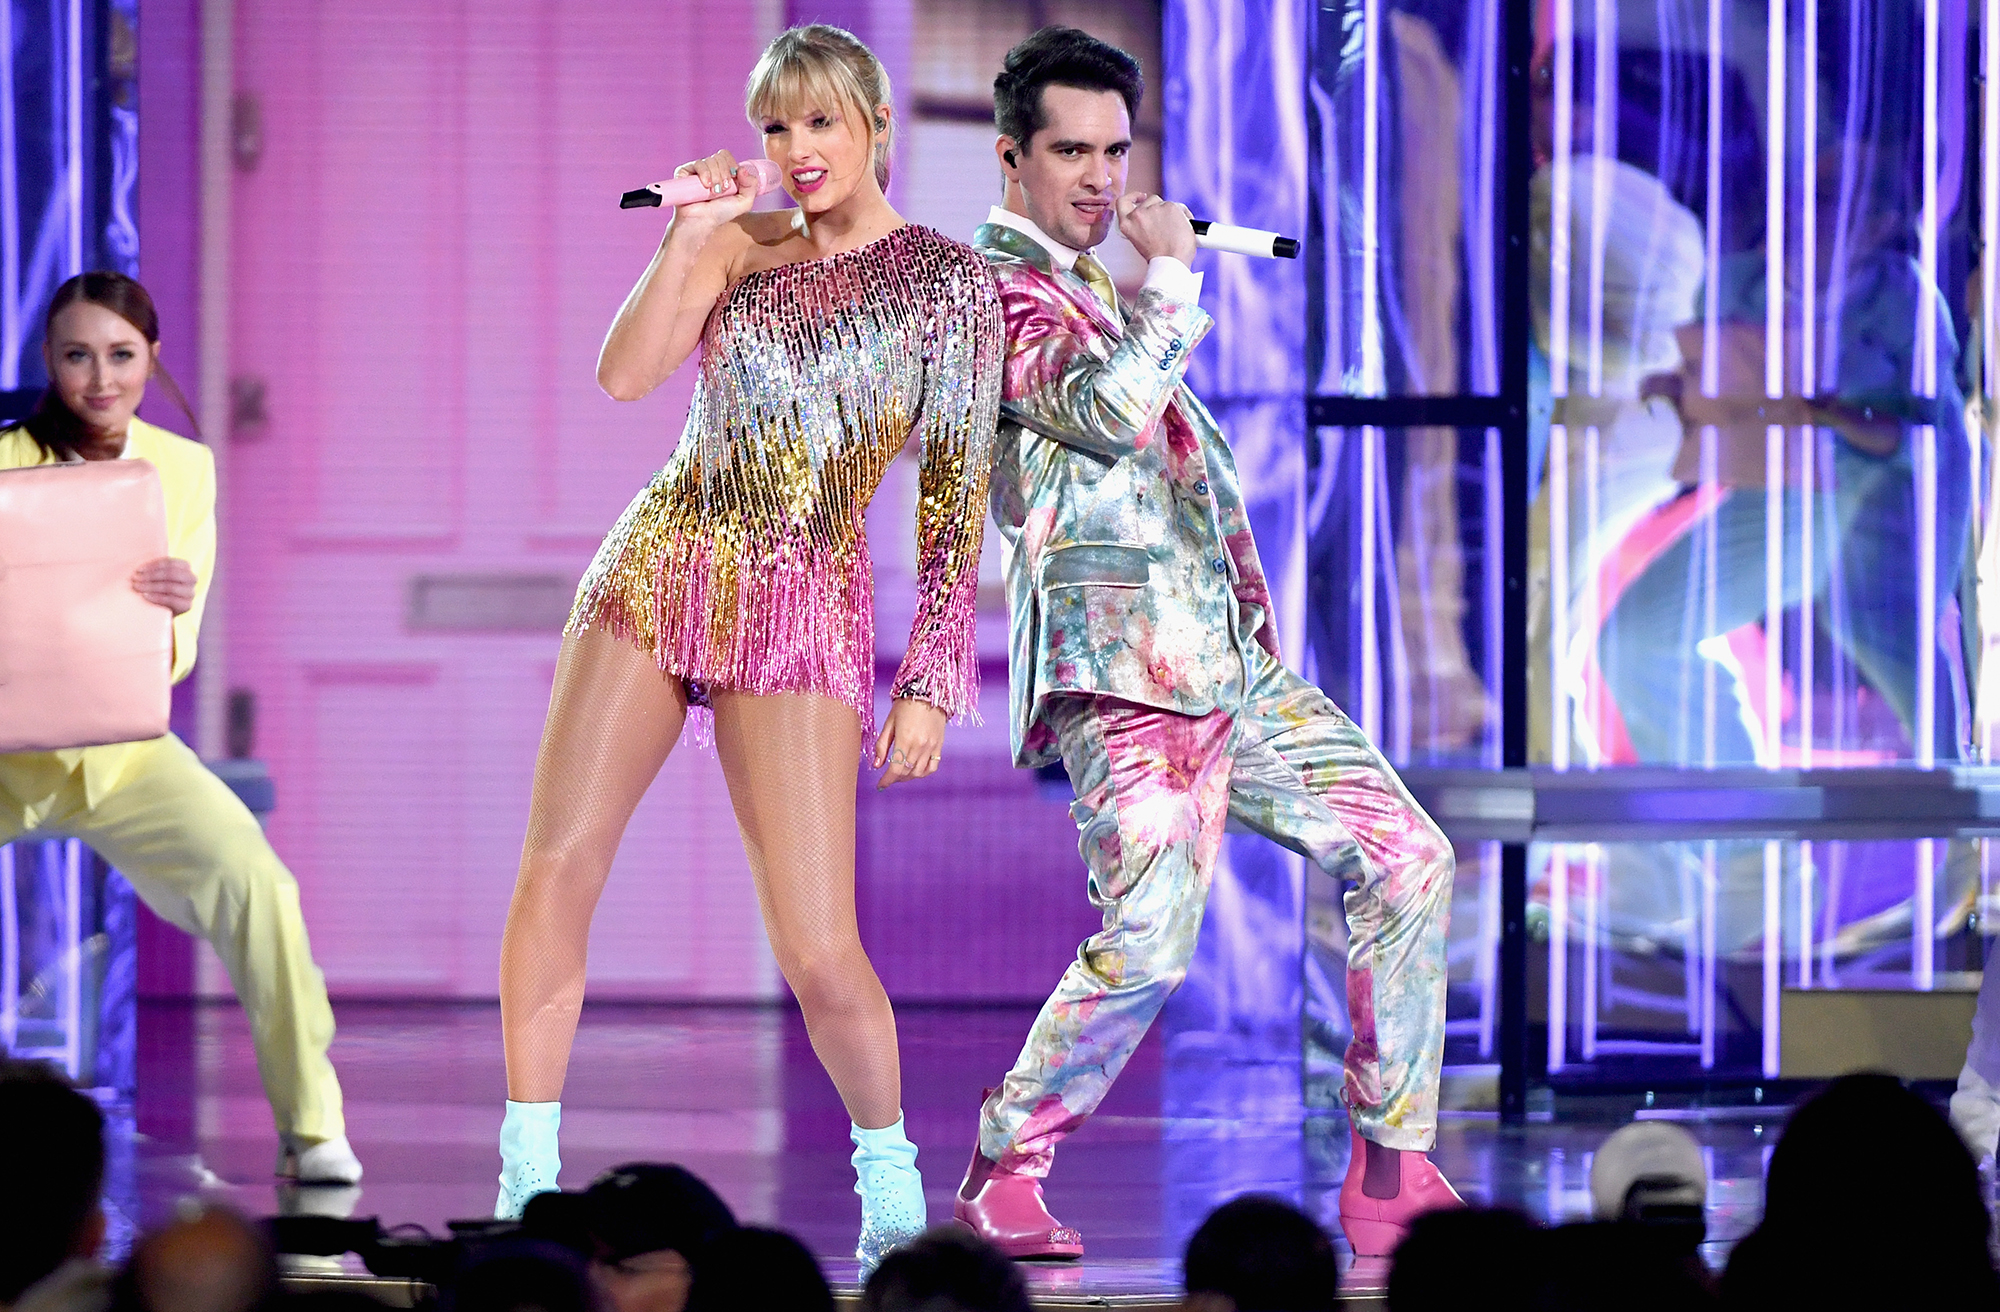 LAS VEGAS, NV - MAY 01: (L-R) Taylor Swift performs with Brendon Urie of Panic! at the Disco onstage during the 2019 Billboard Music Awards at MGM Grand Garden Arena on May 1, 2019 in Las Vegas, Nevada. (Photo by Ethan Miller/Getty Images)